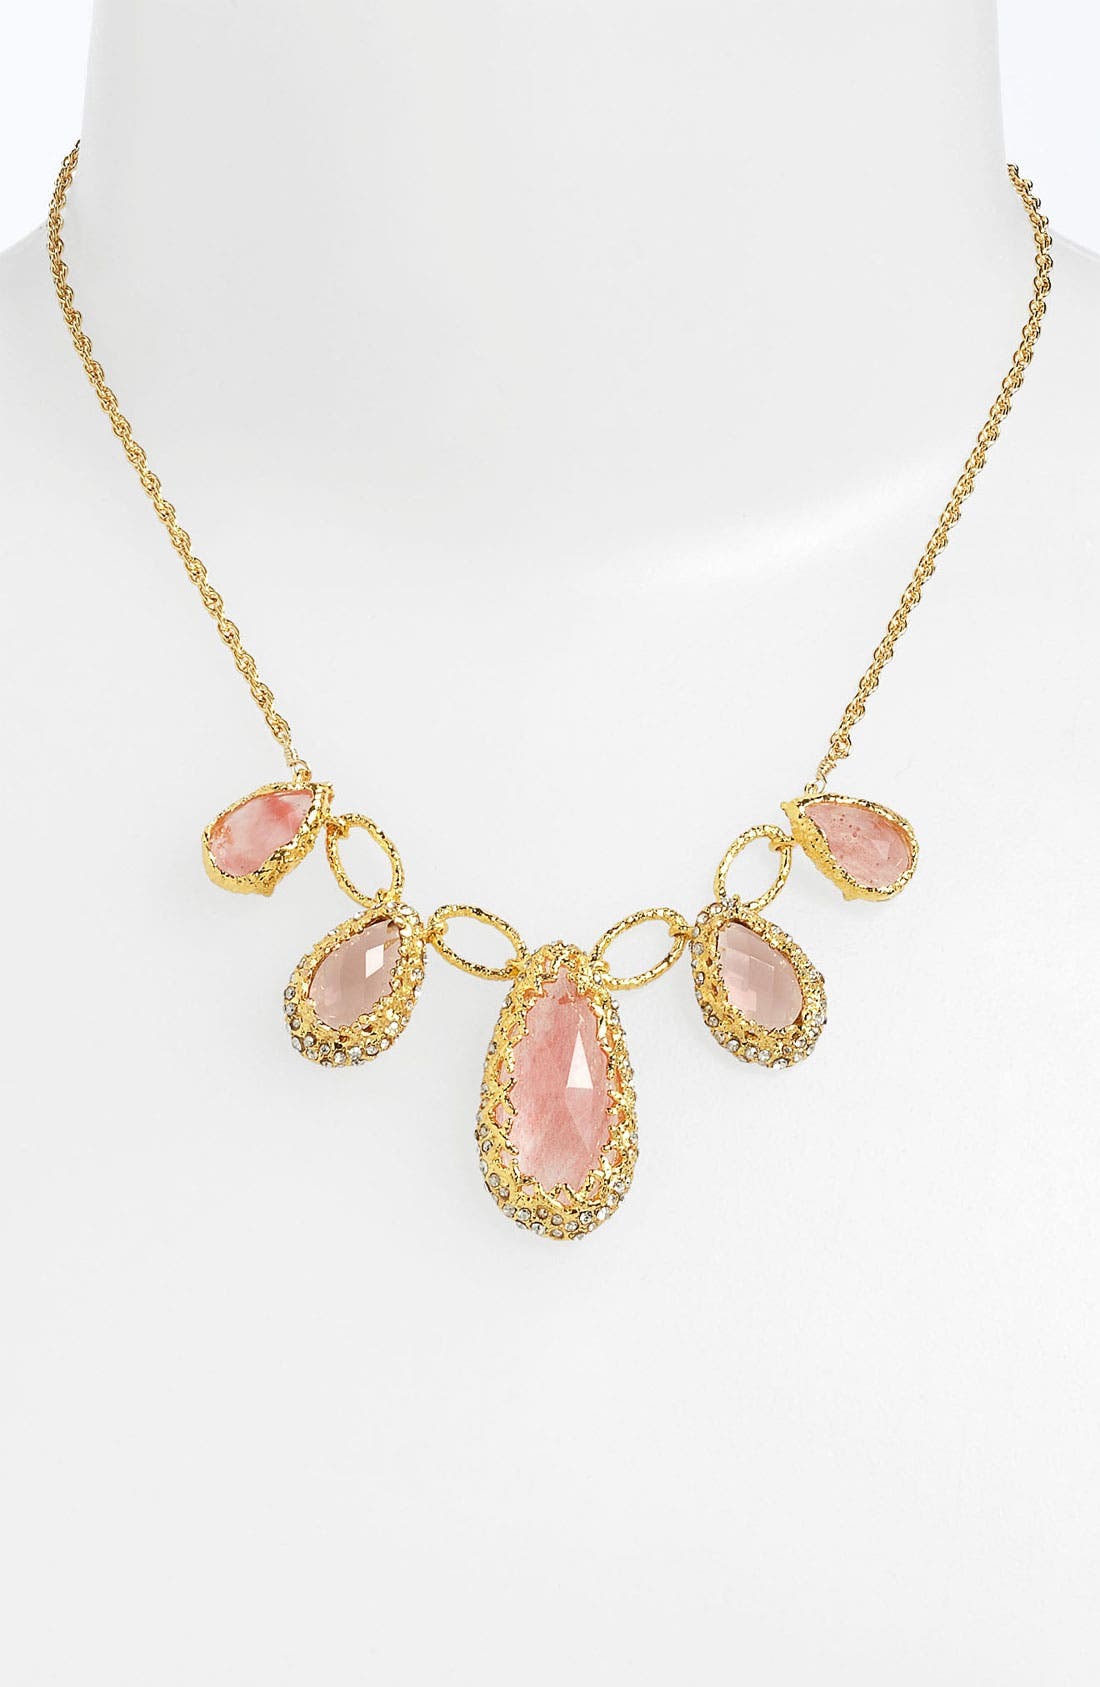 Main Image - Alexis Bittar 'Elements - Floral' Frontal Necklace